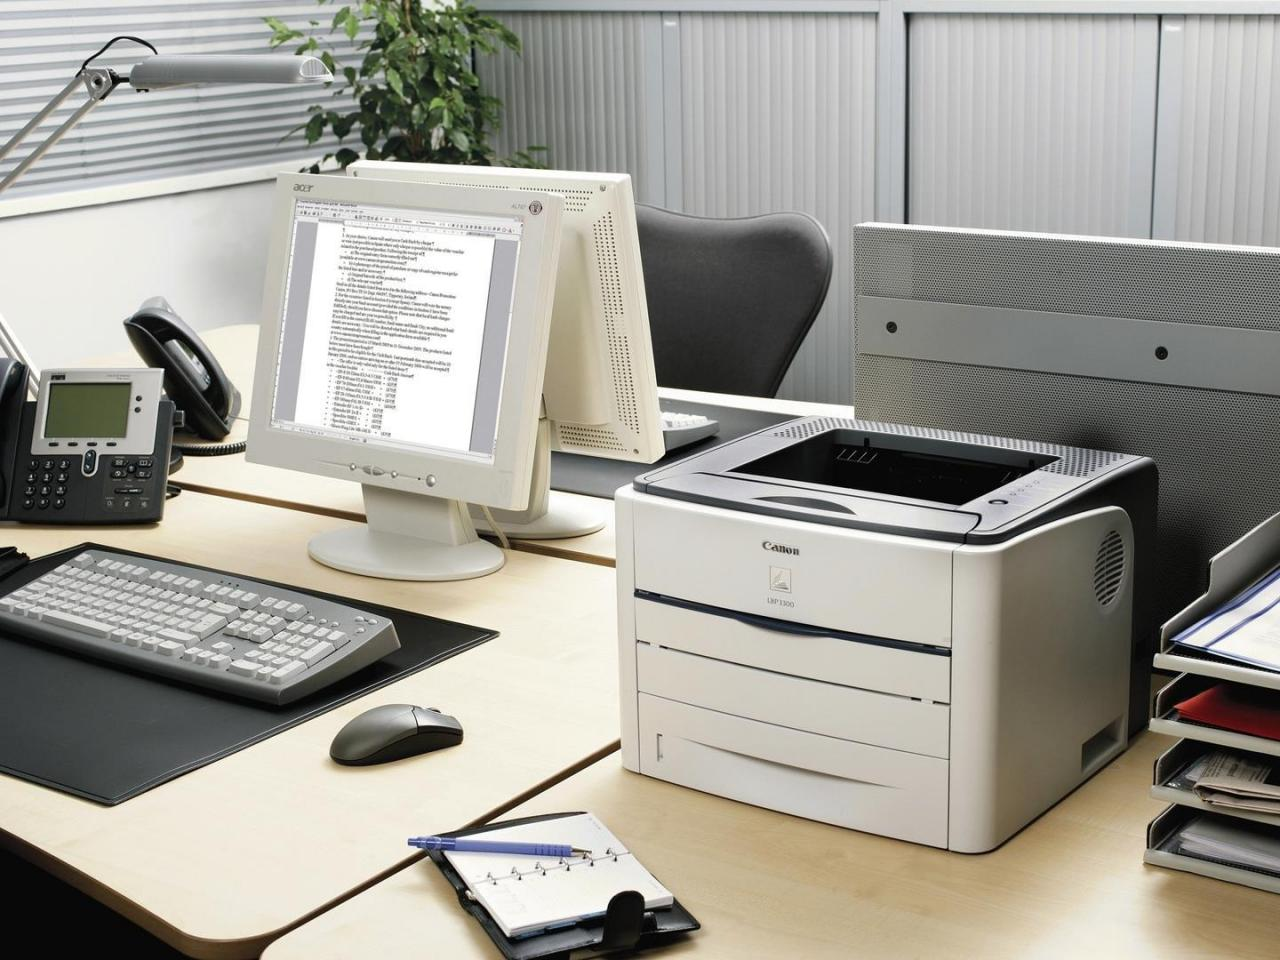 Printer for office work extremely effectively